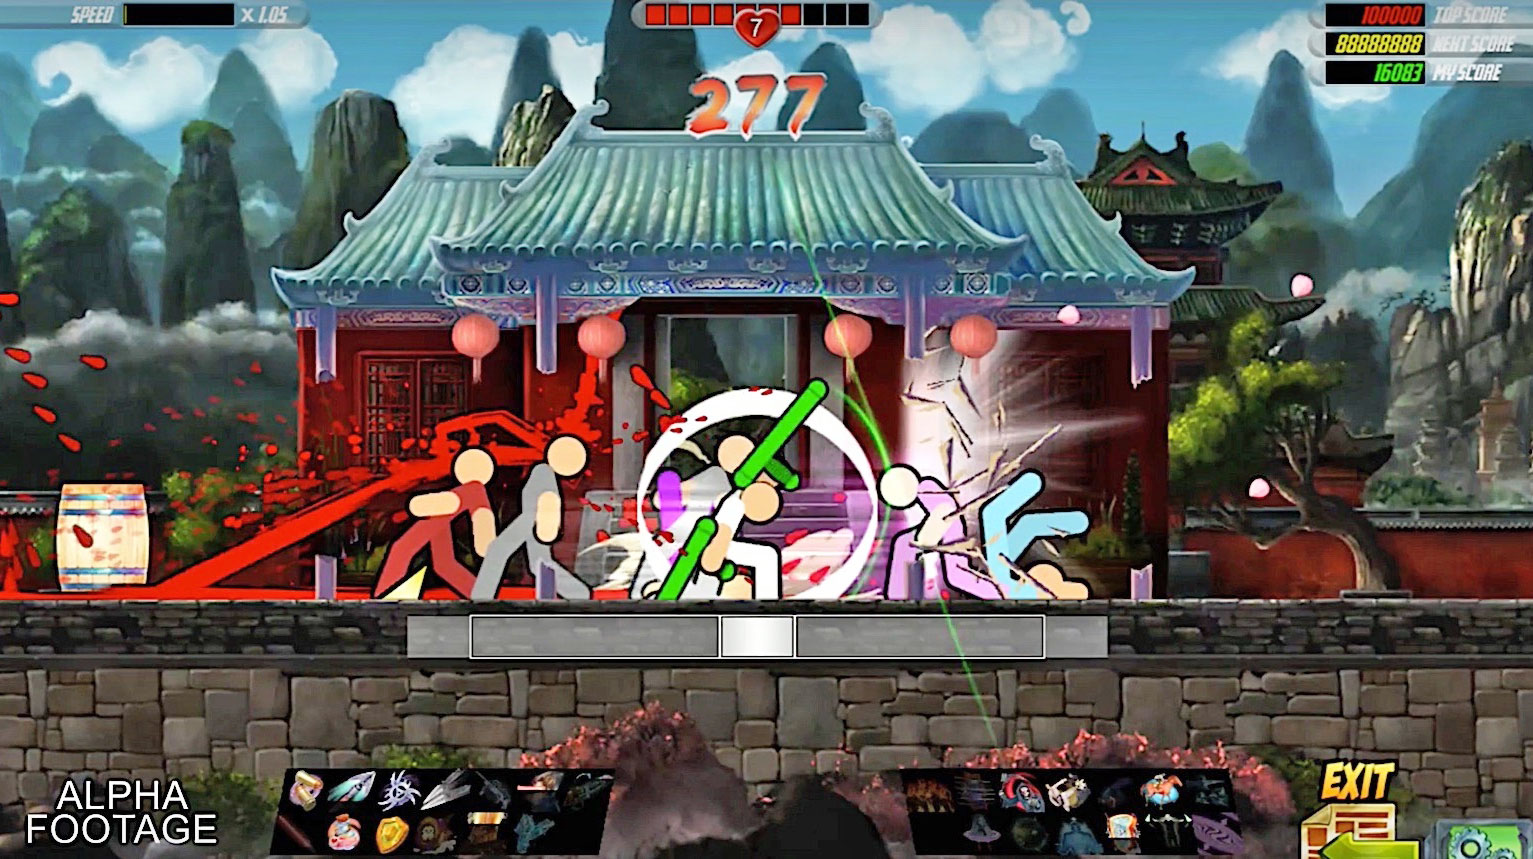 'One Finger Death Punch 2' will pummel its way into your heart